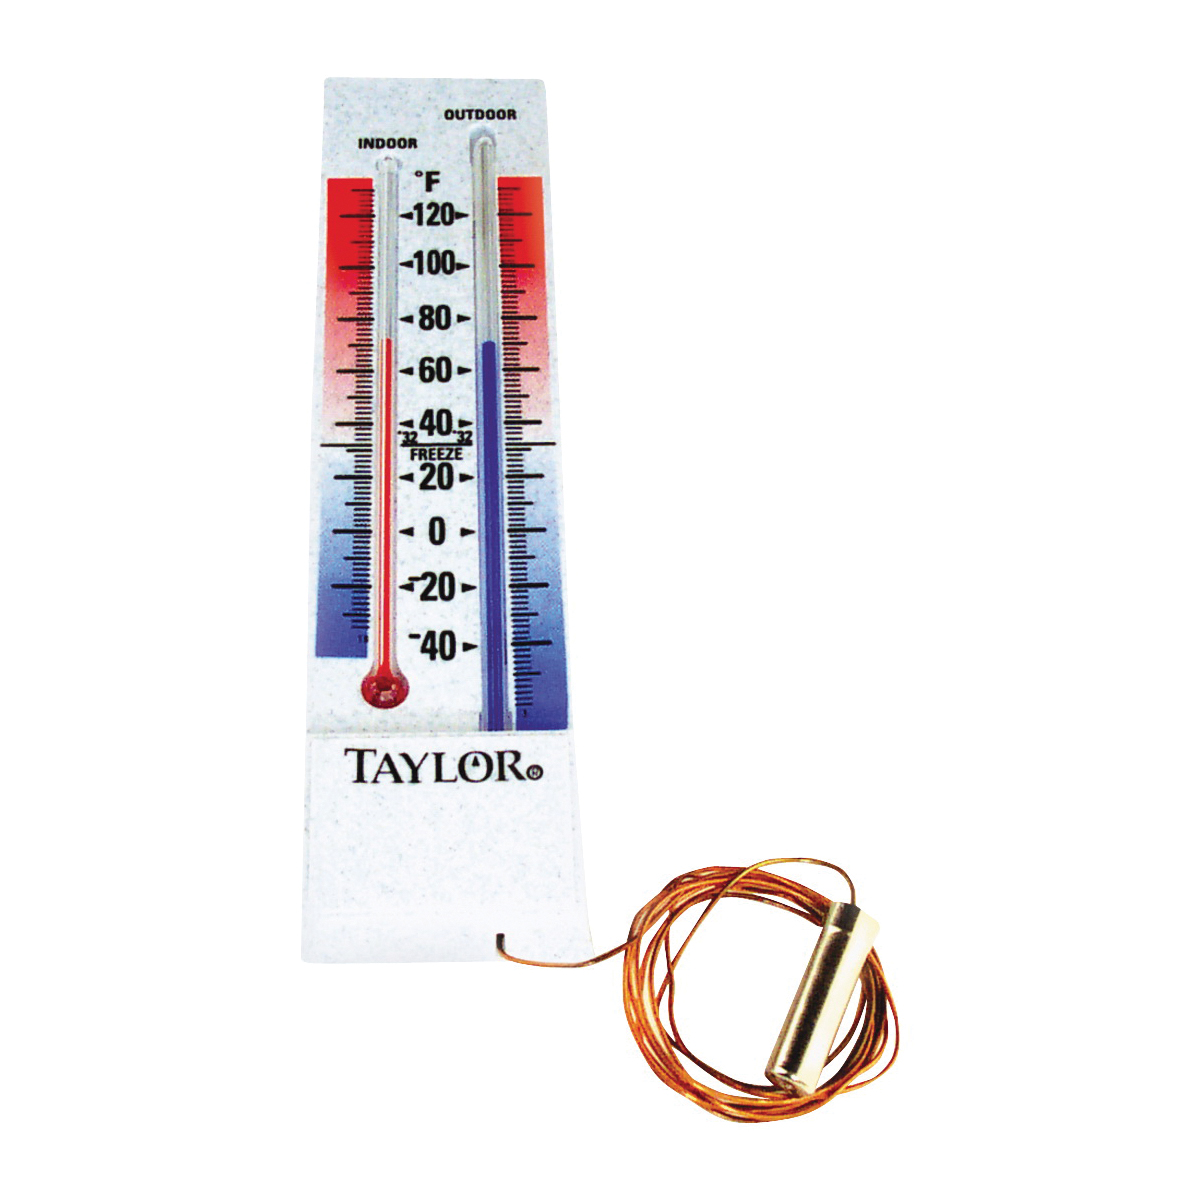 Picture of Taylor 5327 Thermometer, -40 to 100 deg F, Plastic Casing